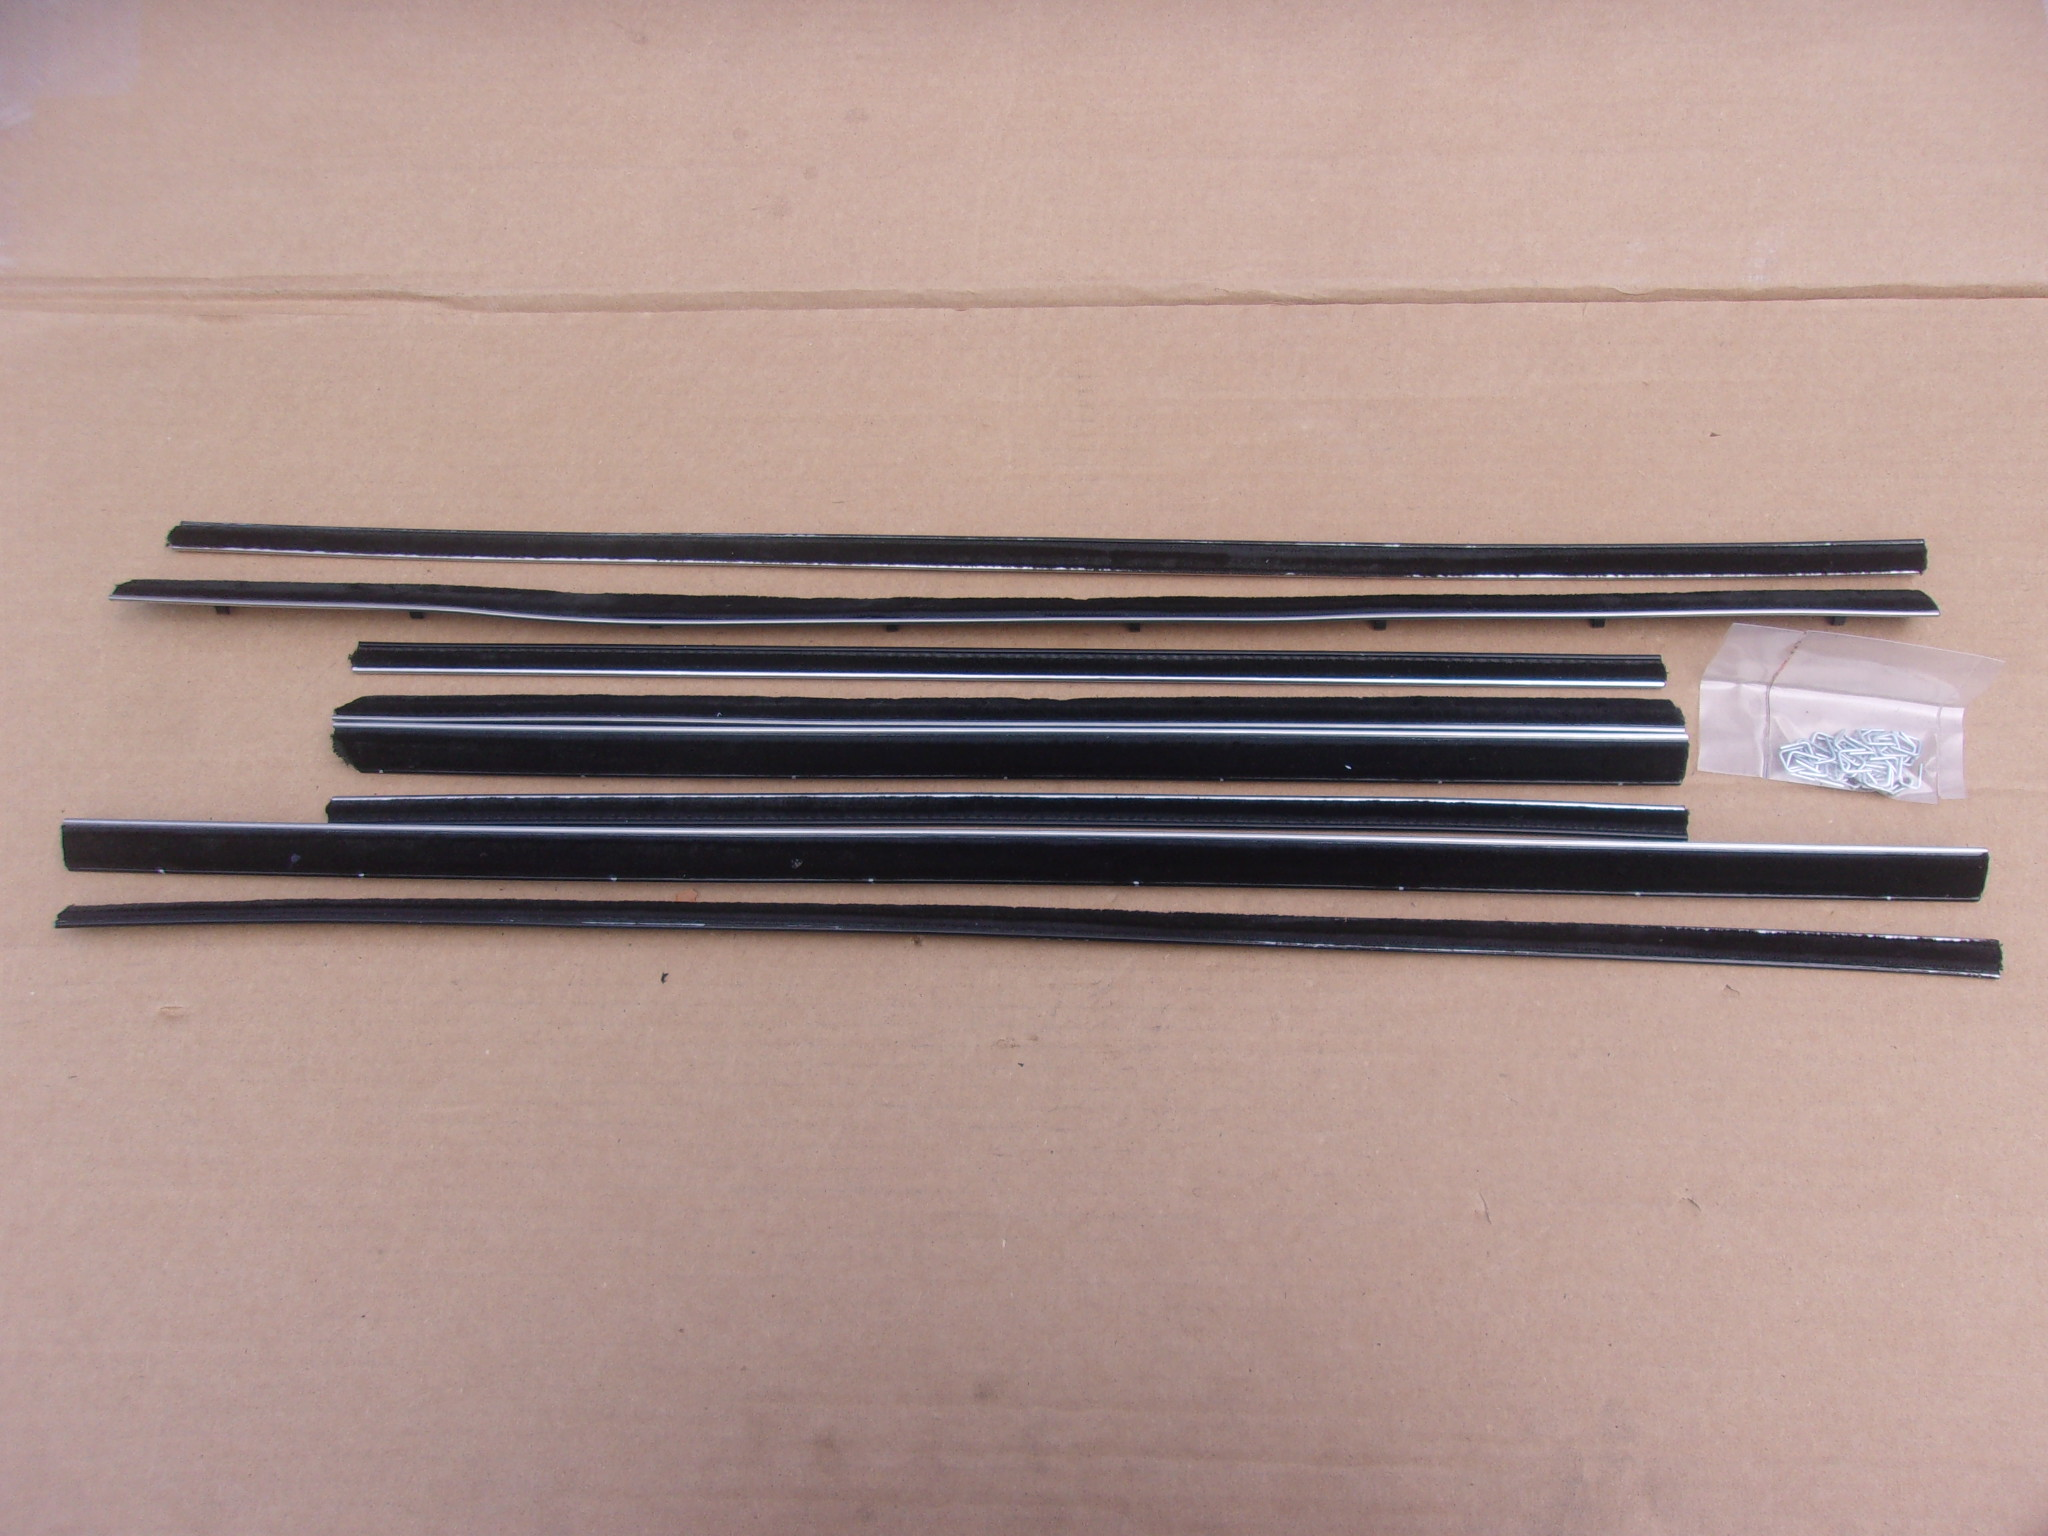 65-68 C BODY 4 DR SEDAN & WAGON WITH BLACK BEAD BELT CATWHISKERS